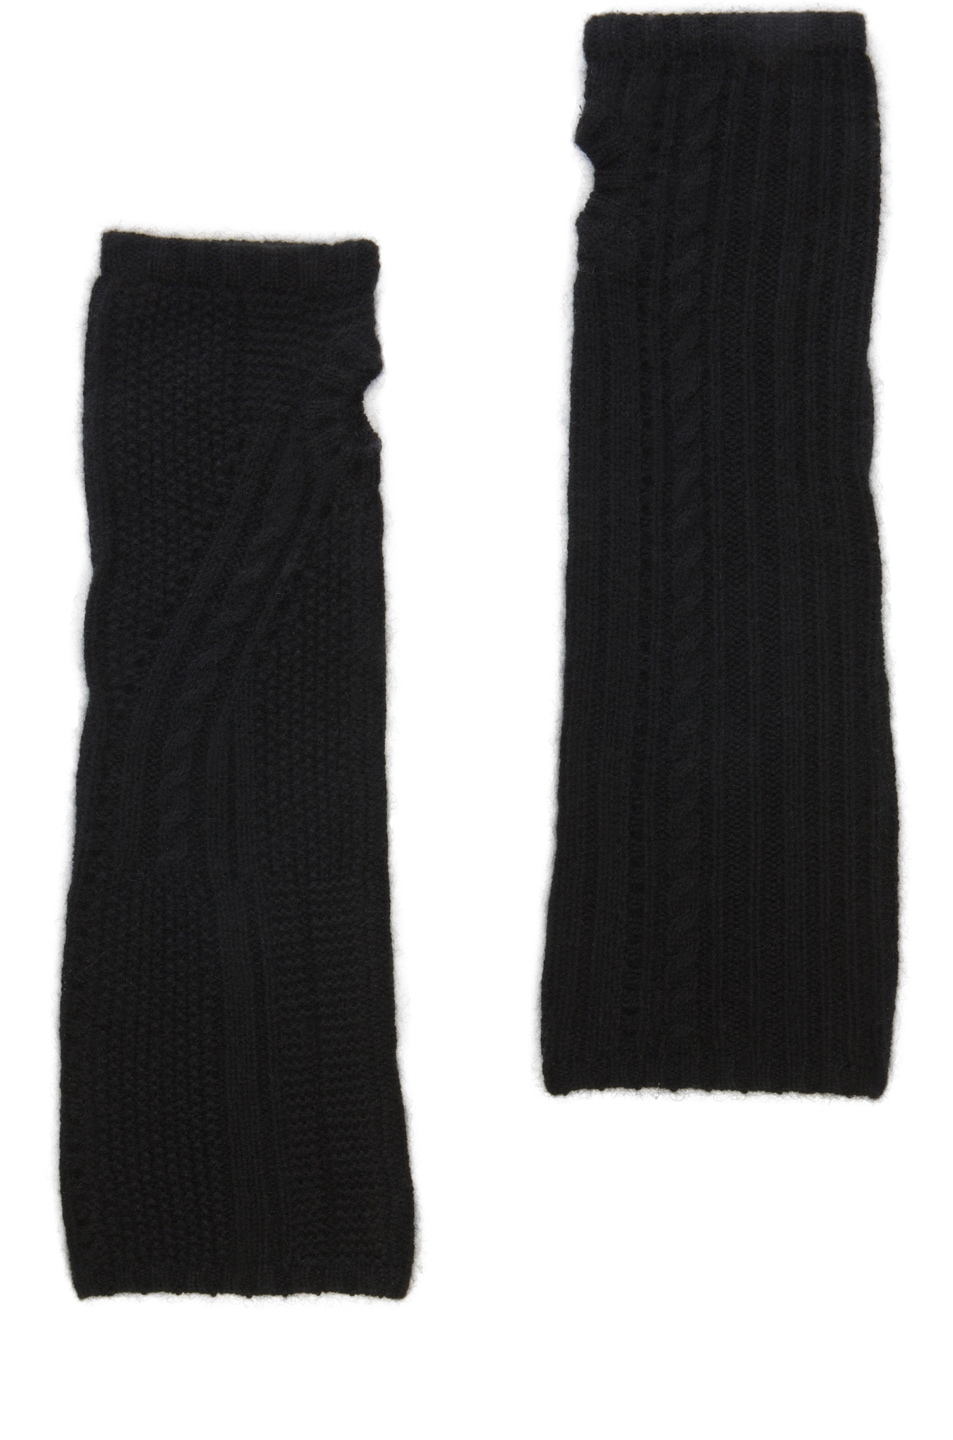 Image 2 of Inhabit Cable Arm Warmers in Black